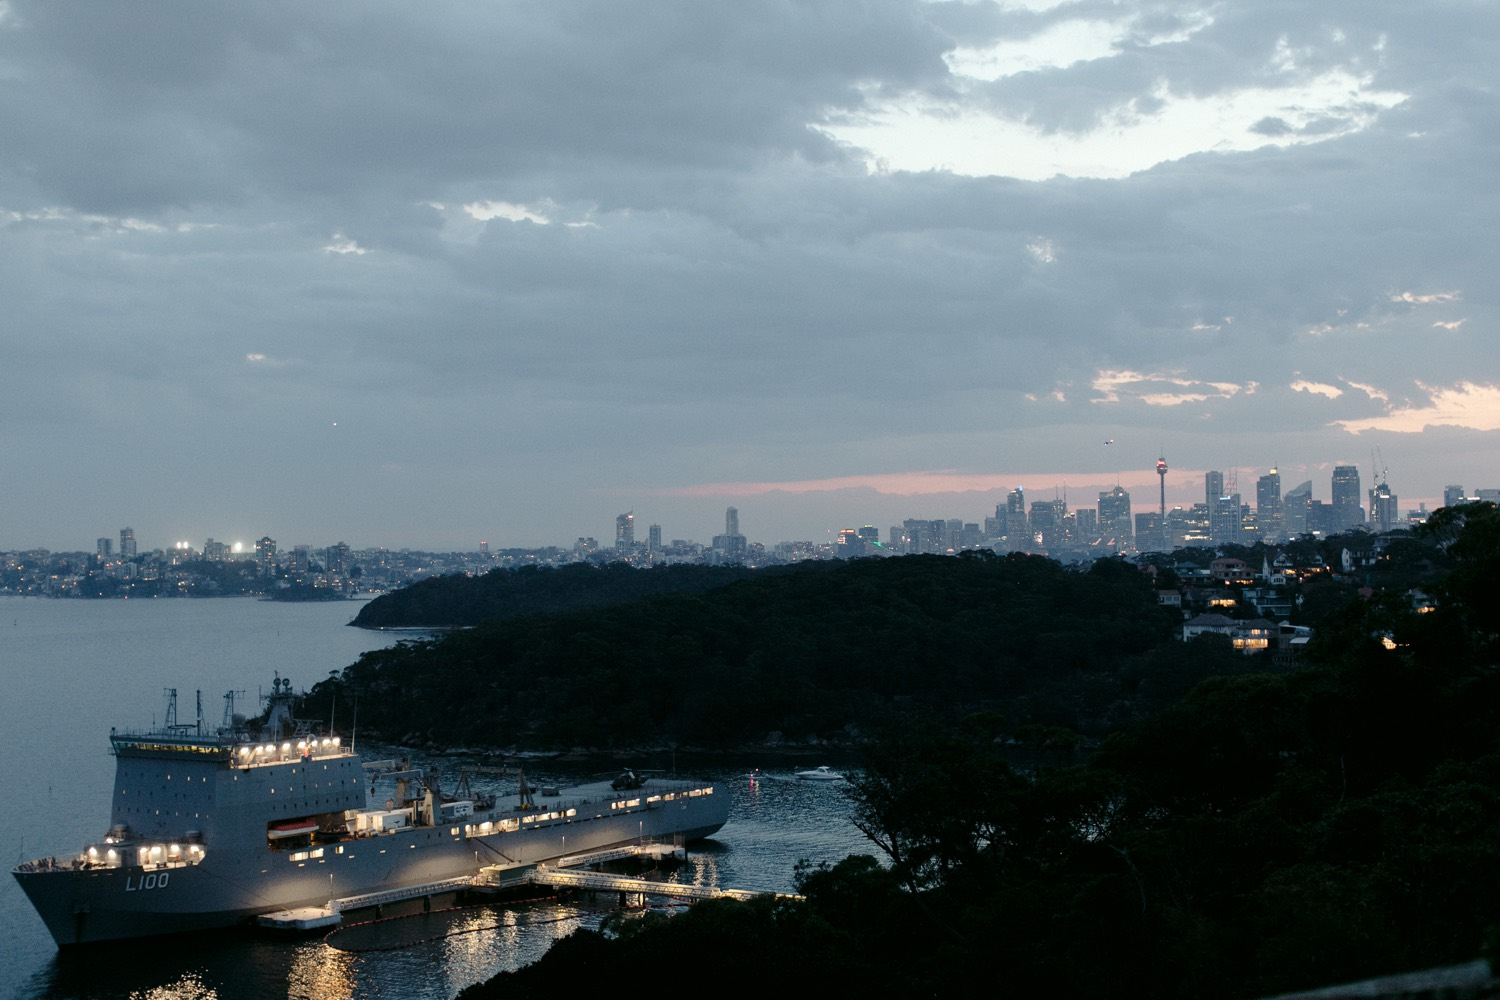 image at dusk looking over sydney harbour from gunners barracks